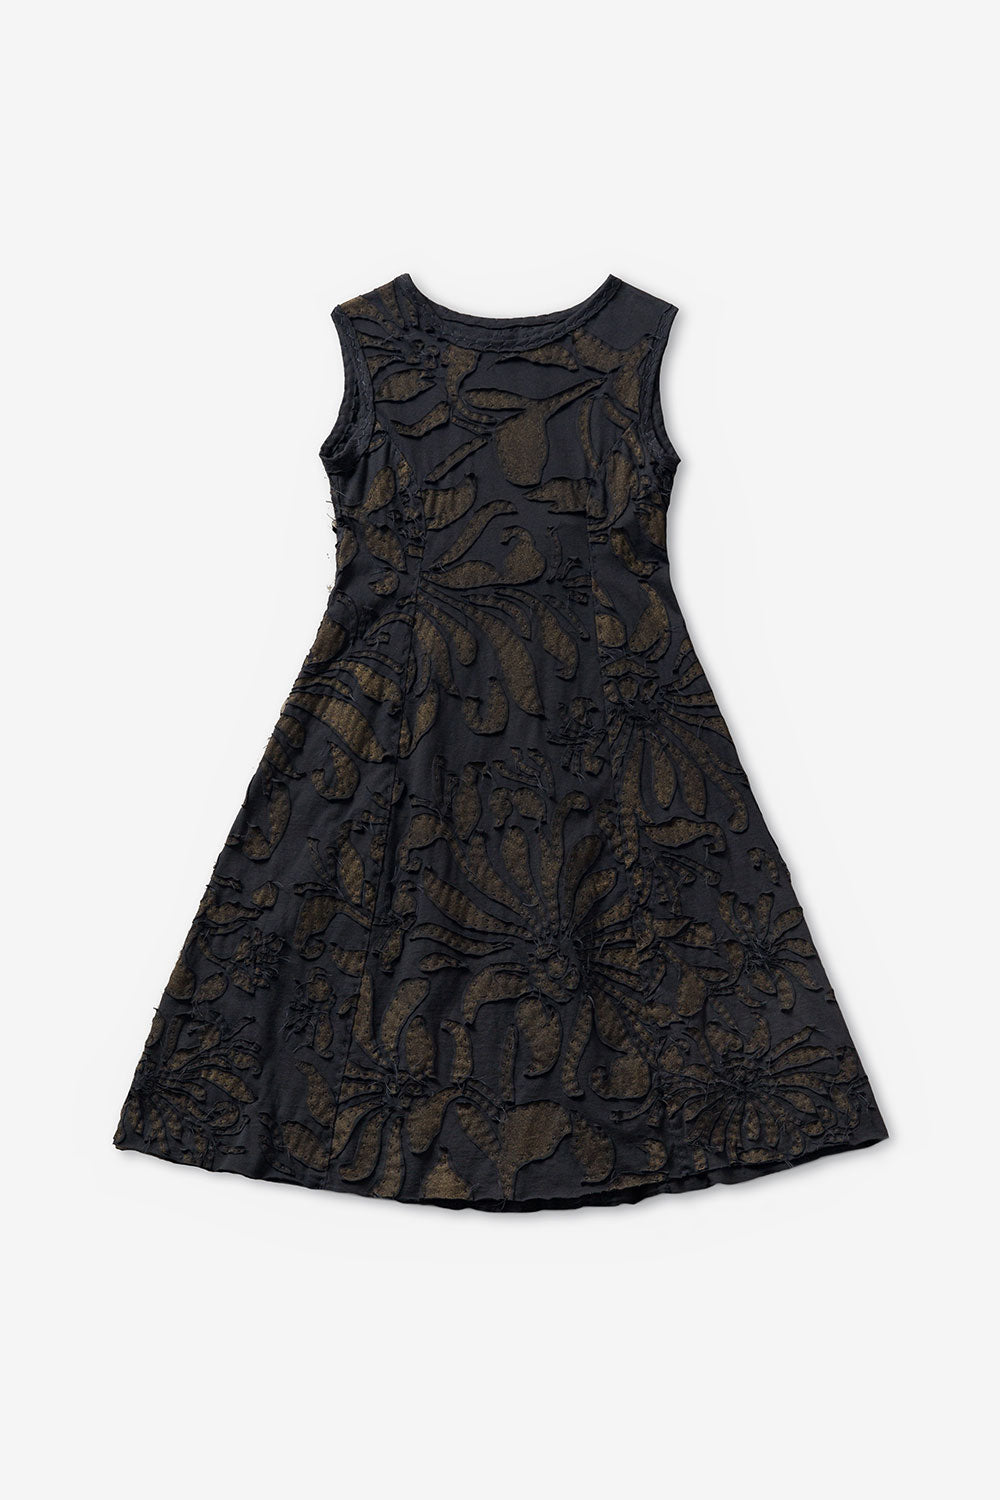 The School of Making Factory Dress Pattern for Sewing and Handmade Clothing for Women